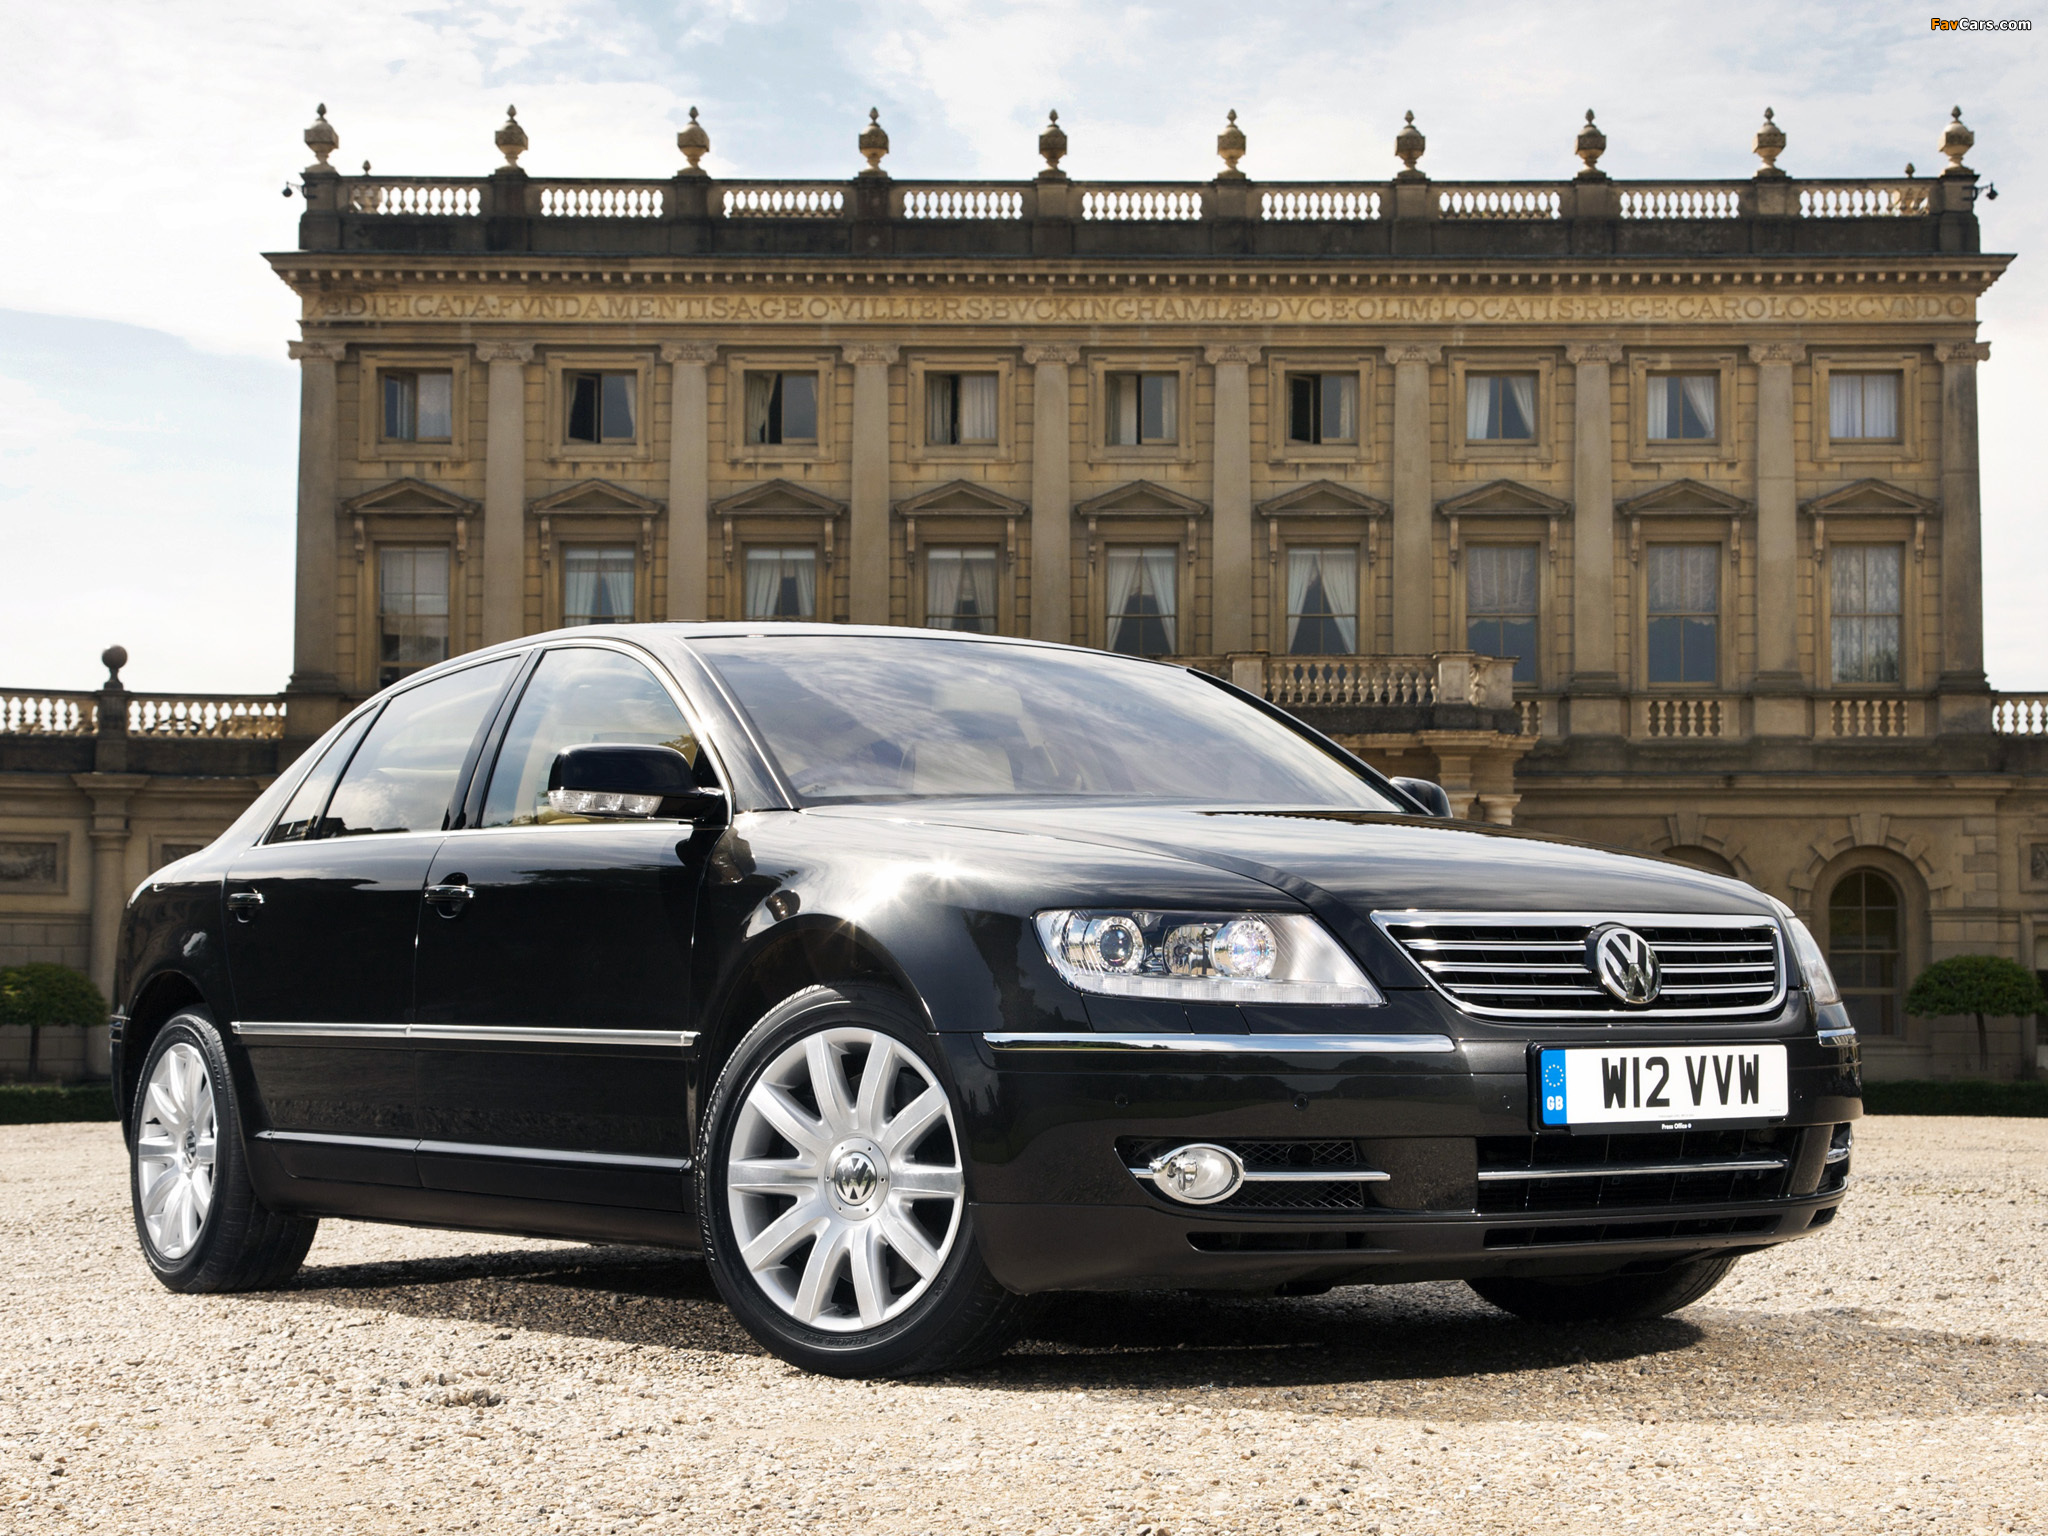 images of volkswagen phaeton w12 uk spec 2007 10 2048x1536. Black Bedroom Furniture Sets. Home Design Ideas